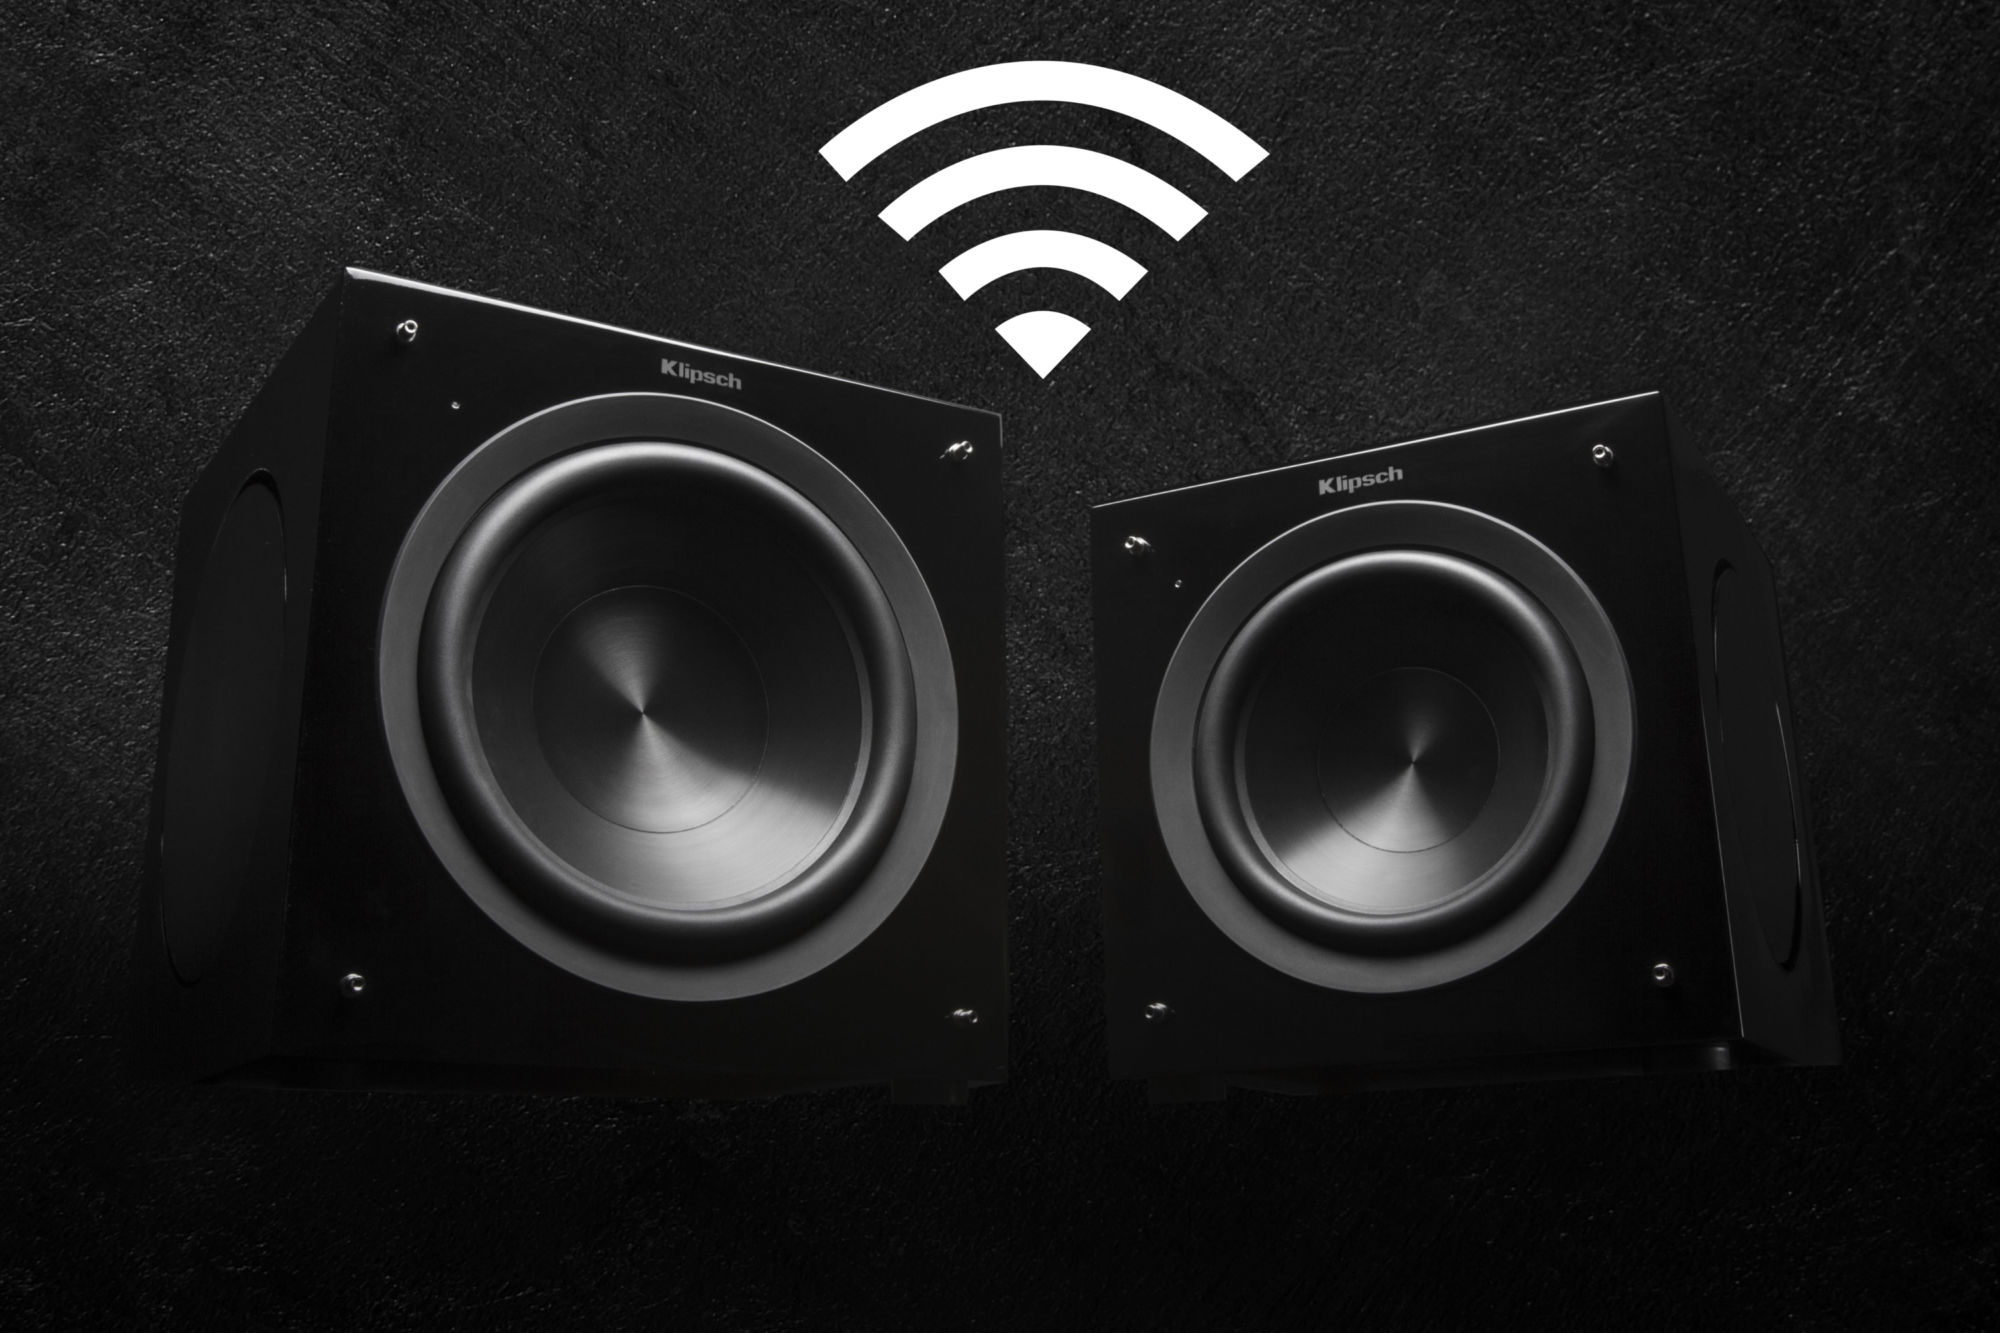 Klipsch wireles subwoofers